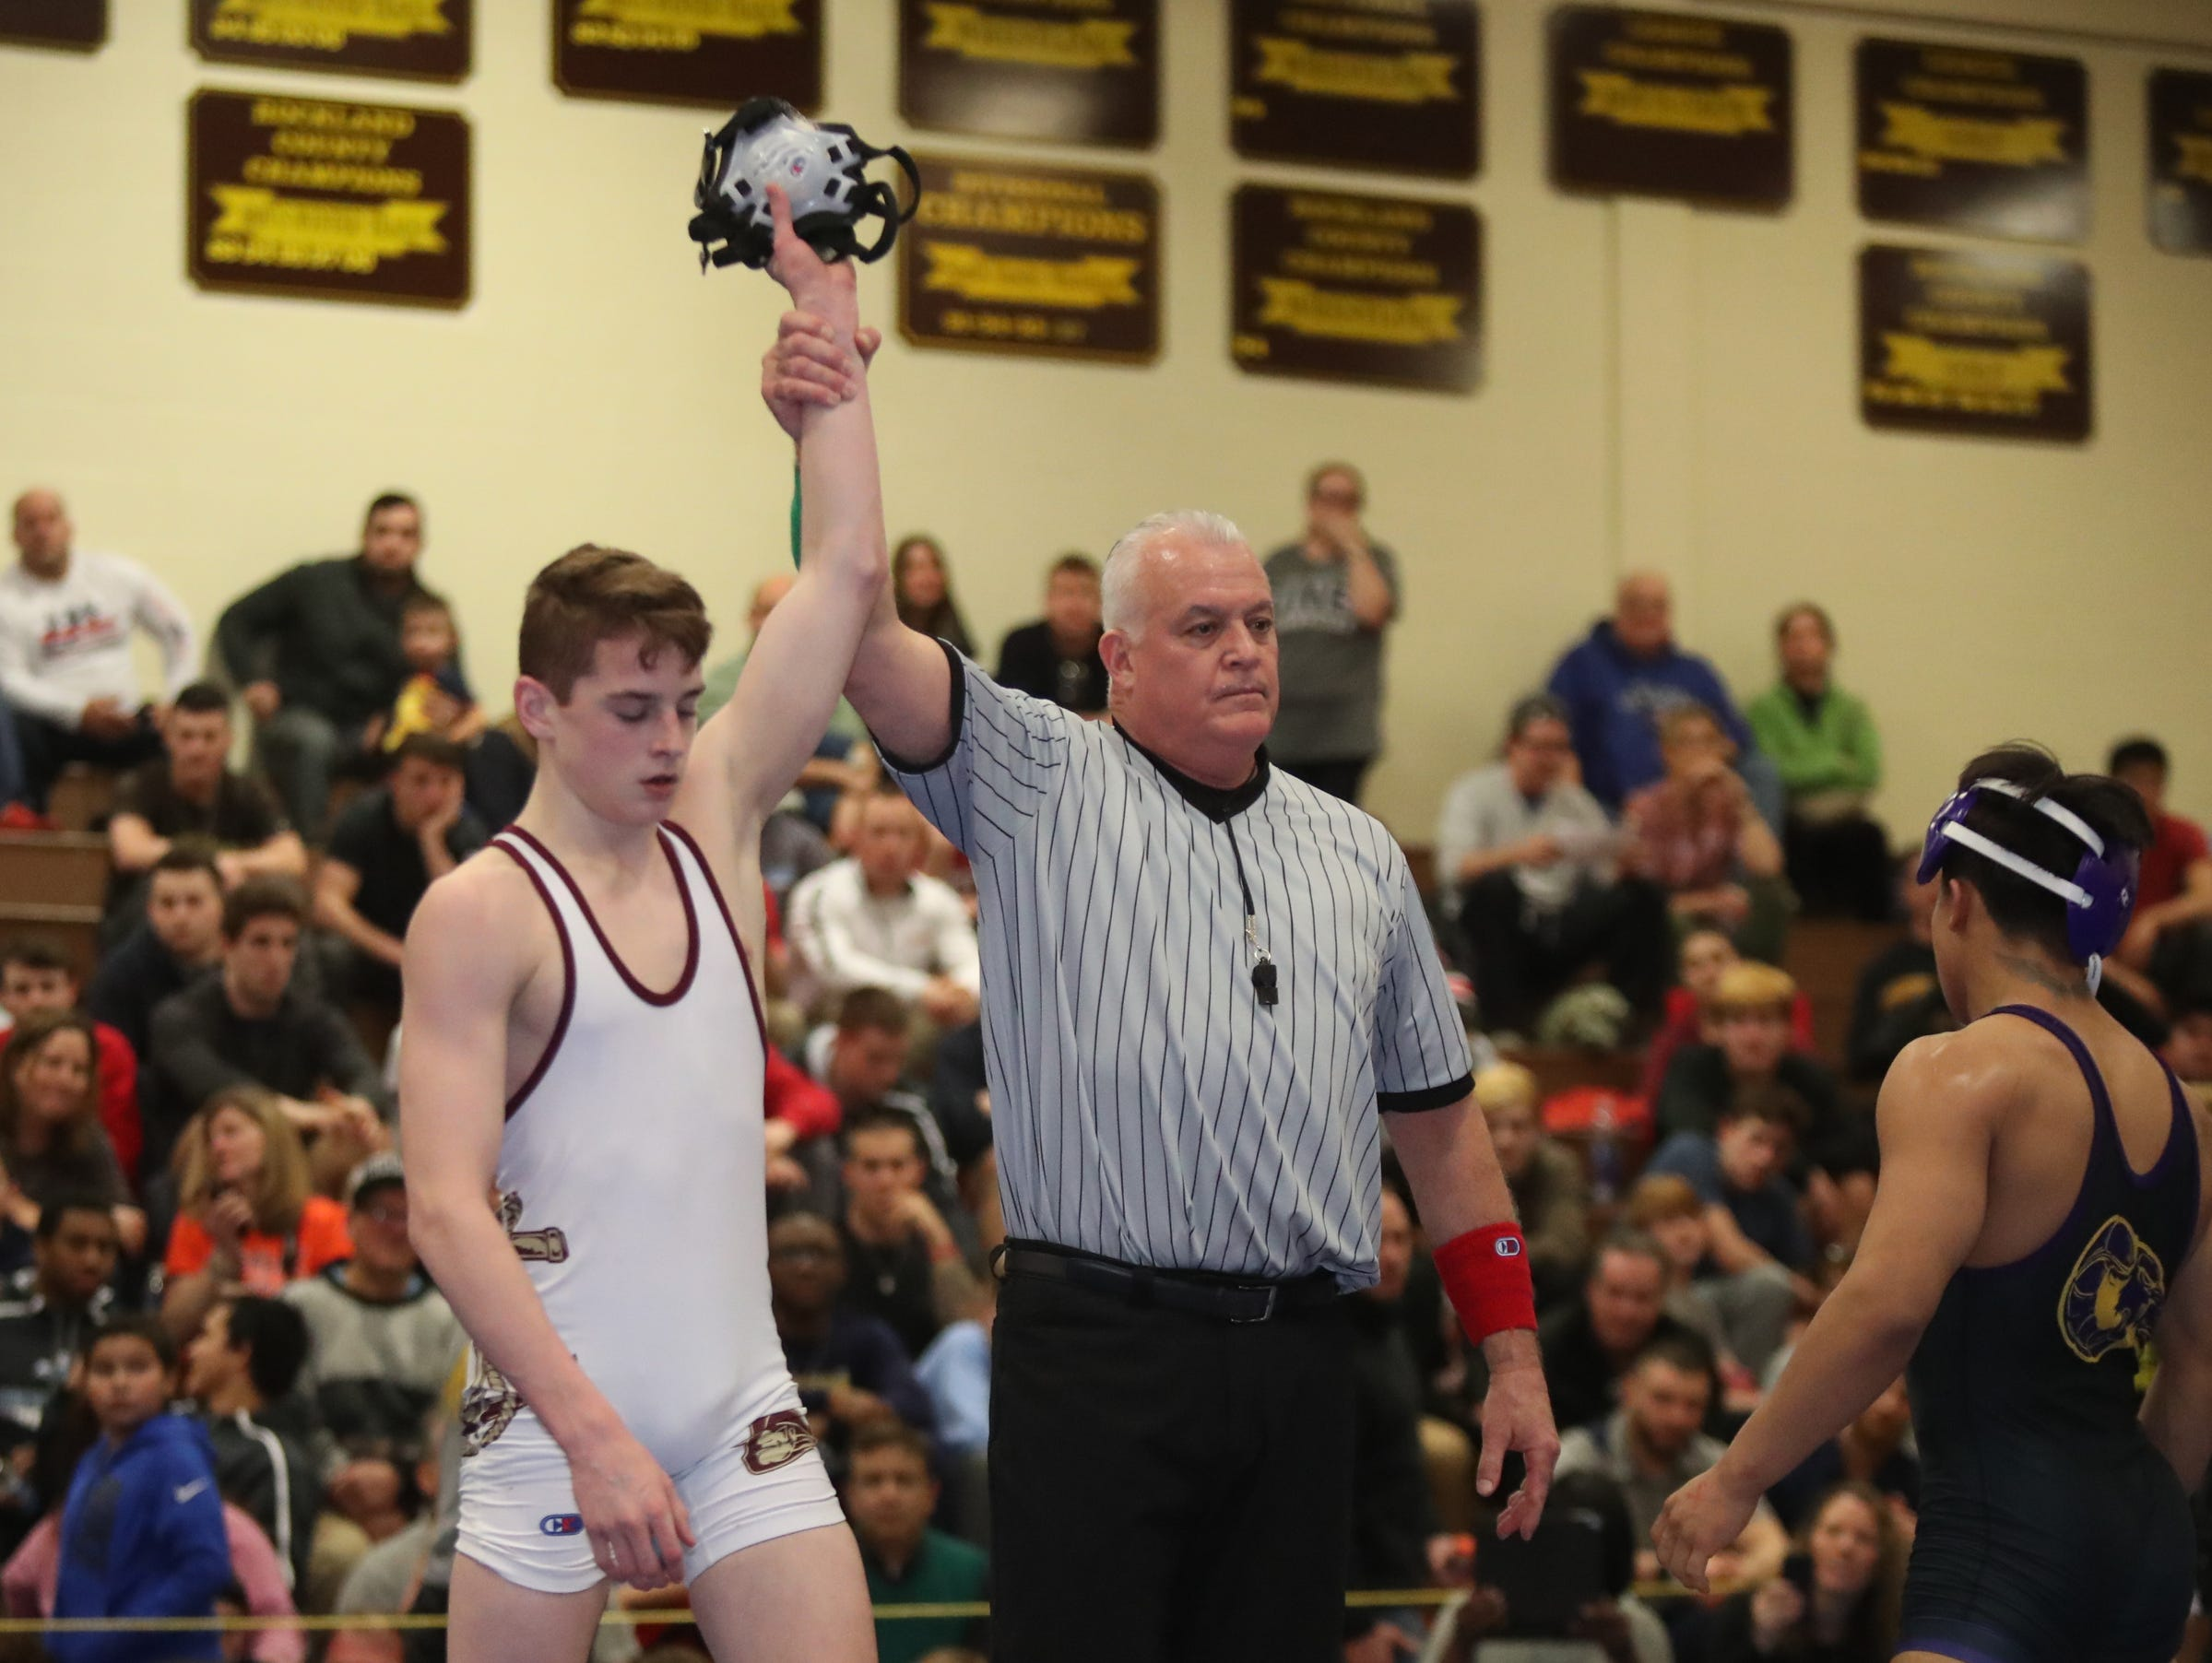 Arlington's Dennis Robin defeats Clarkstown North's Alexis Diaz in the 126-pound match of the division I wrestling finals at Clarkstown South High School on Sunday, February 10, 2019.